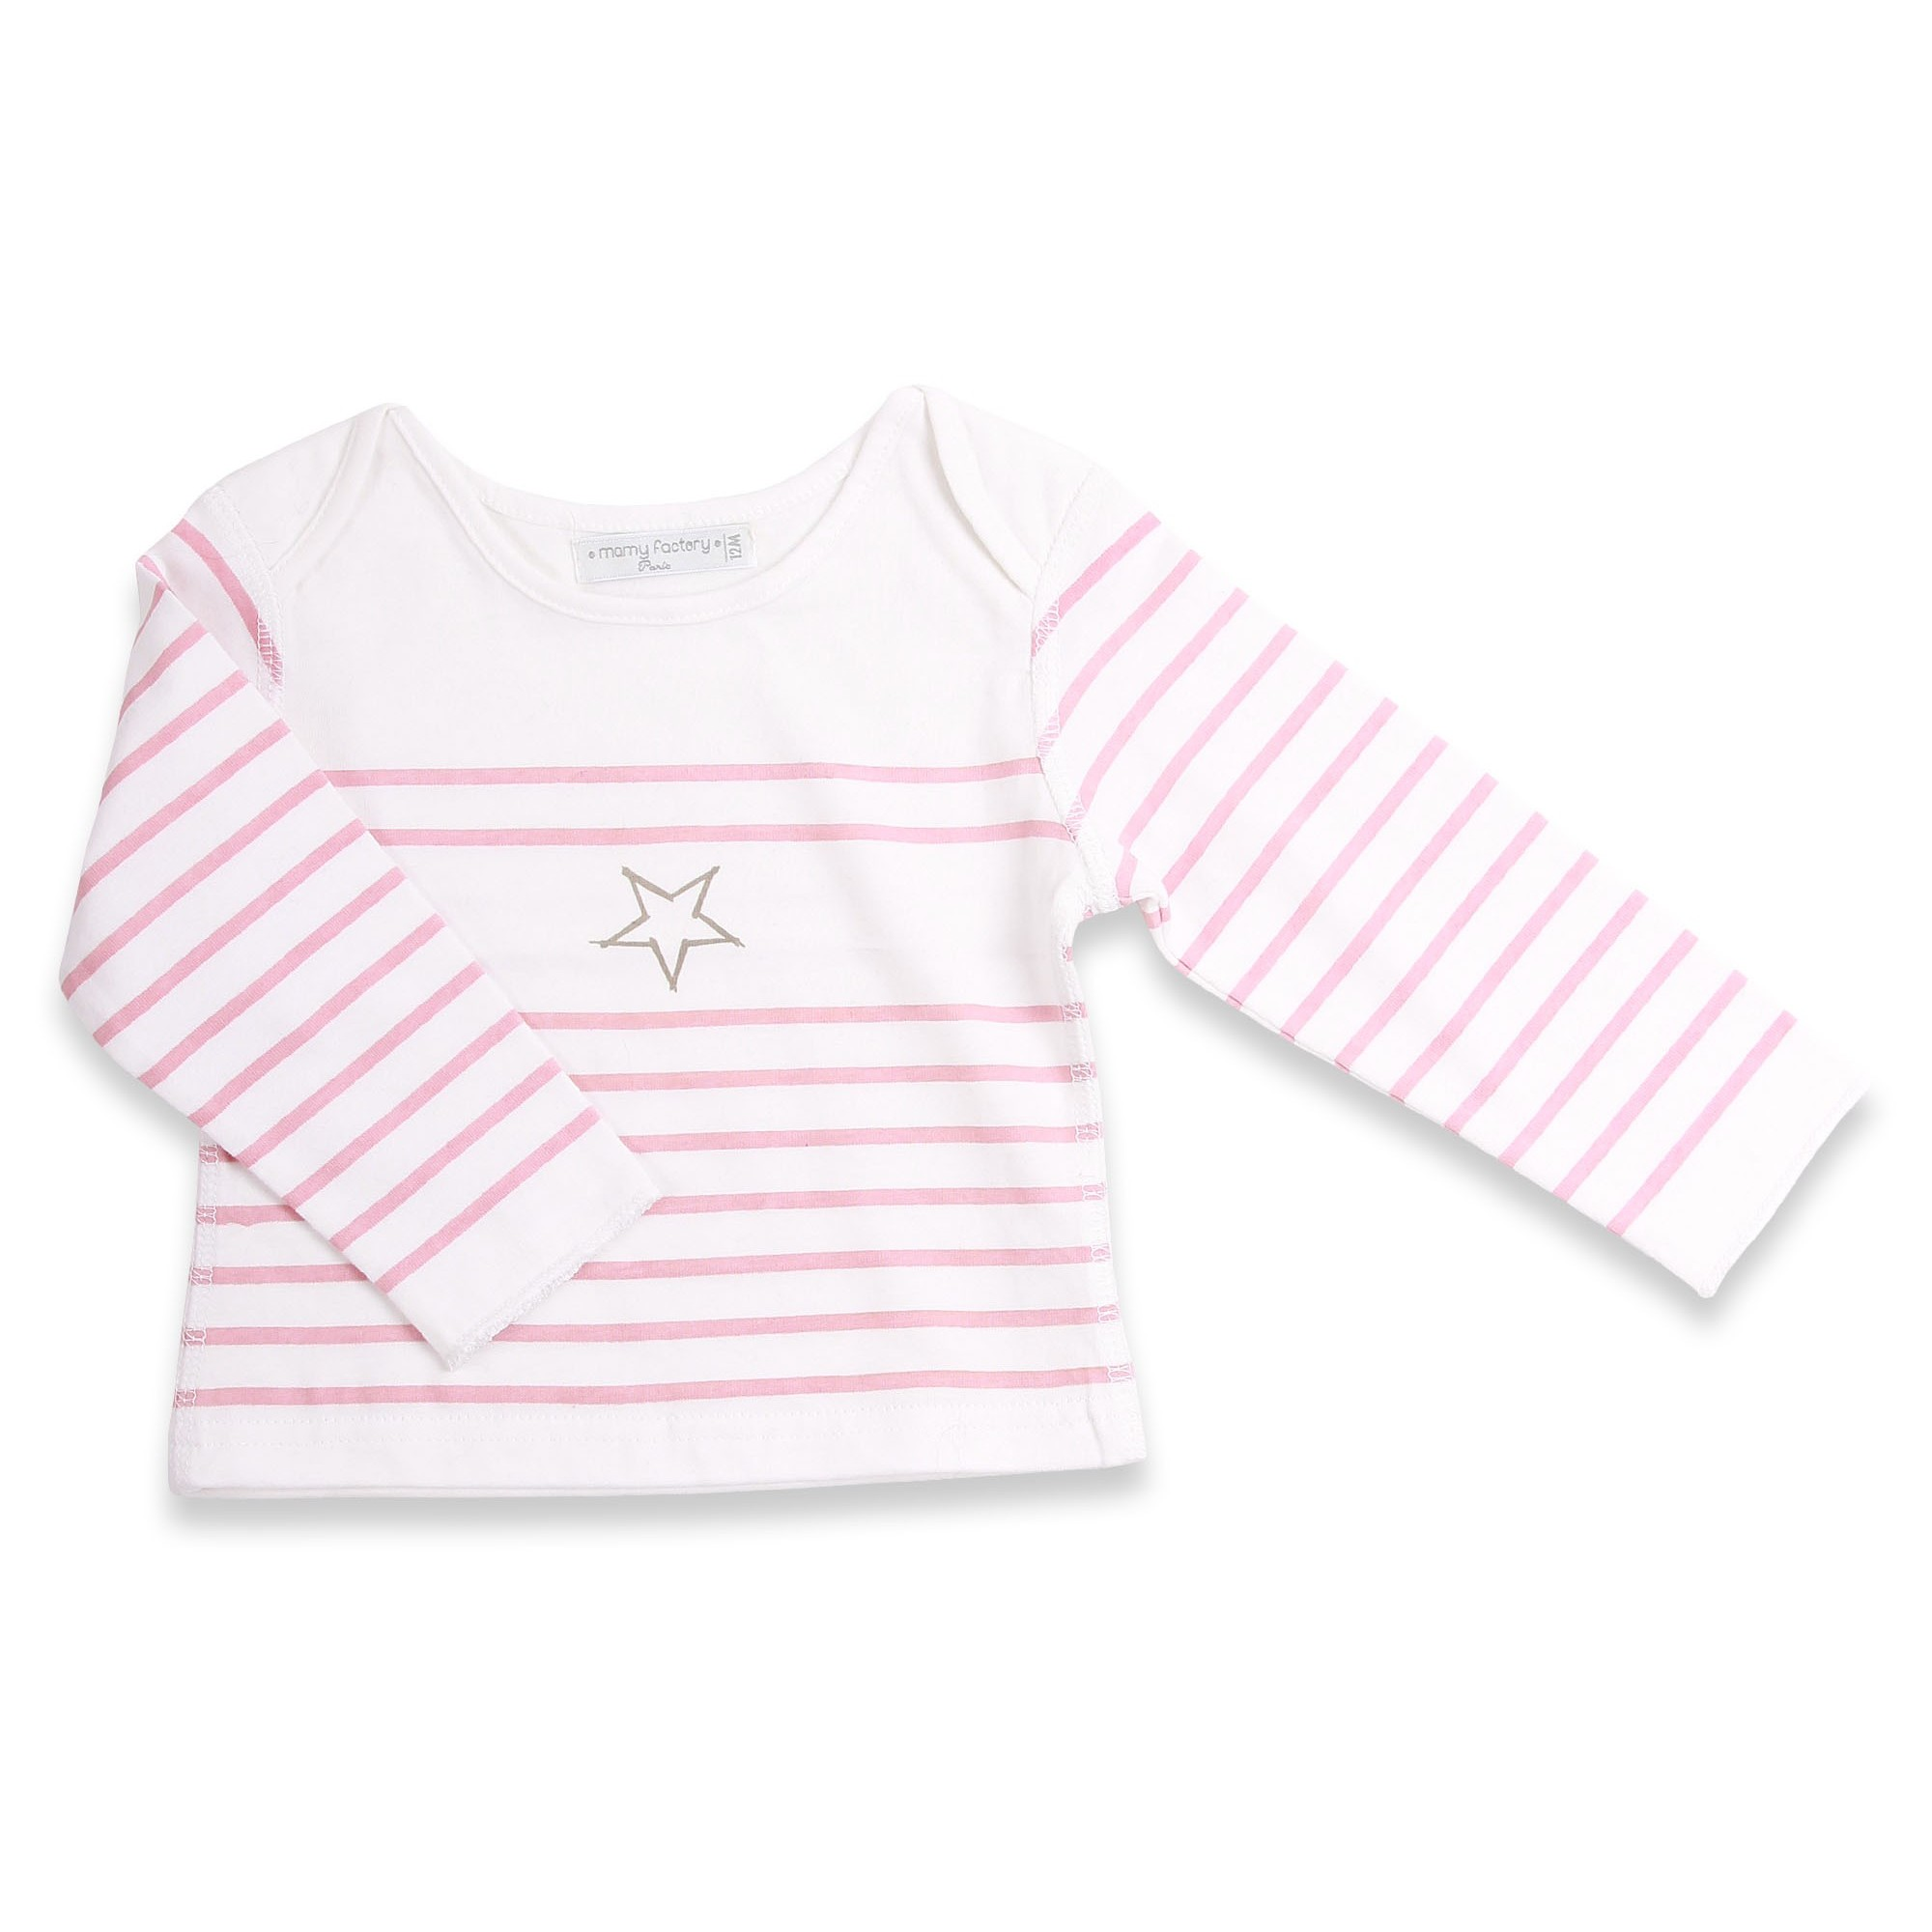 T-shirt marinière style for baby pink striped